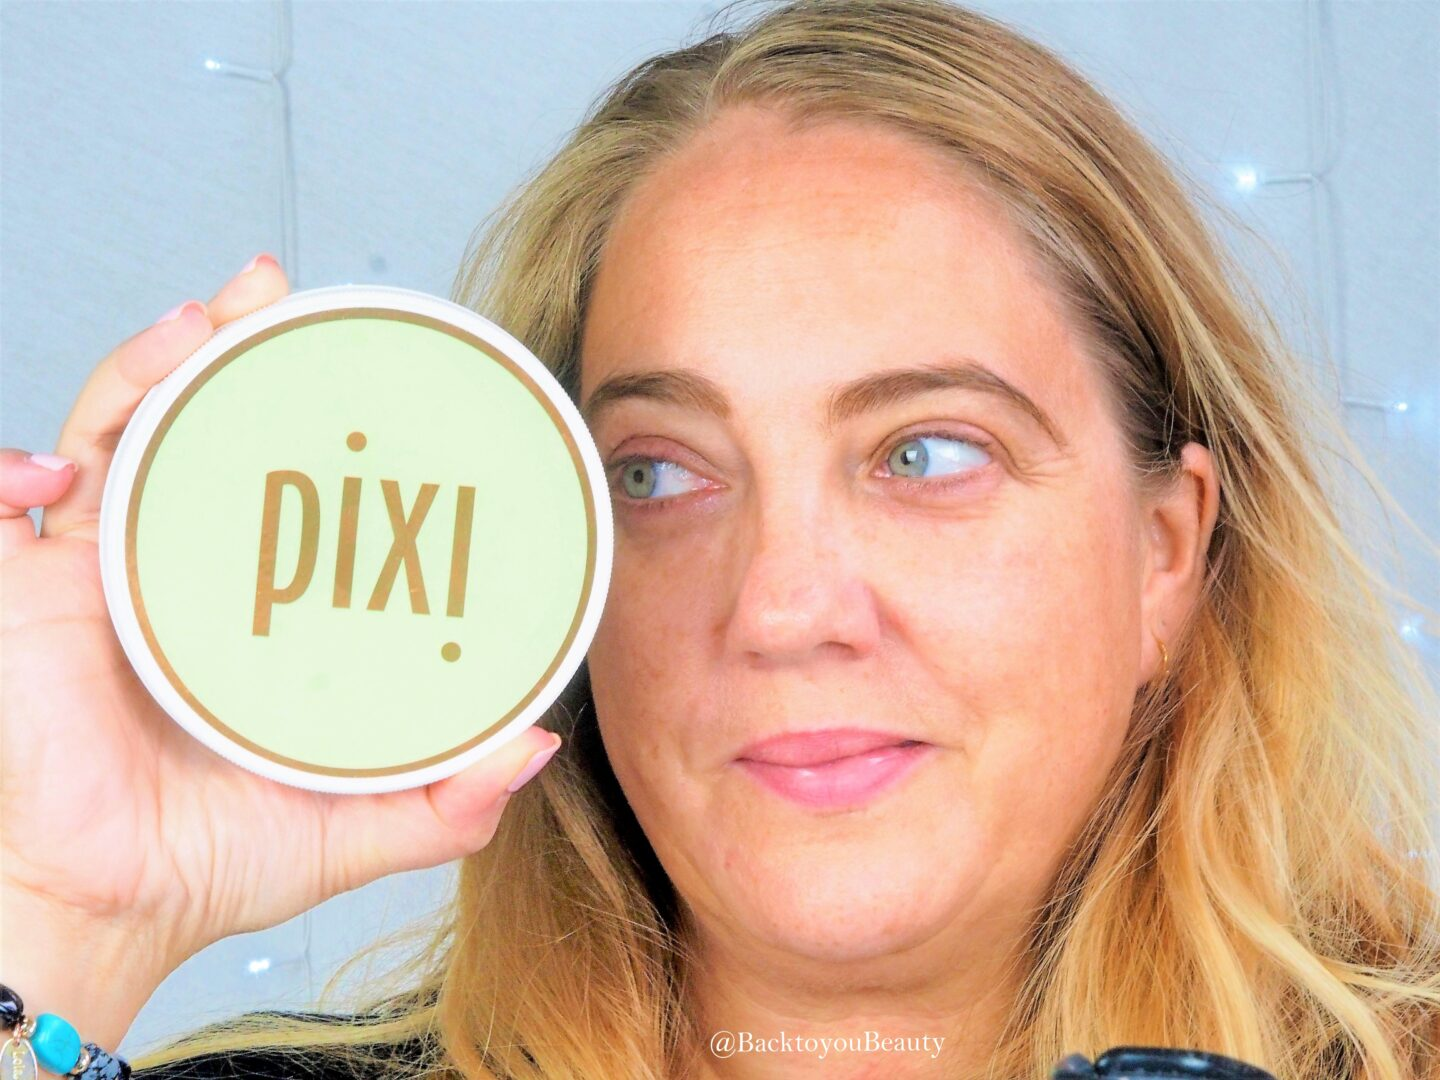 Back to you beauty wearing pixi skincare